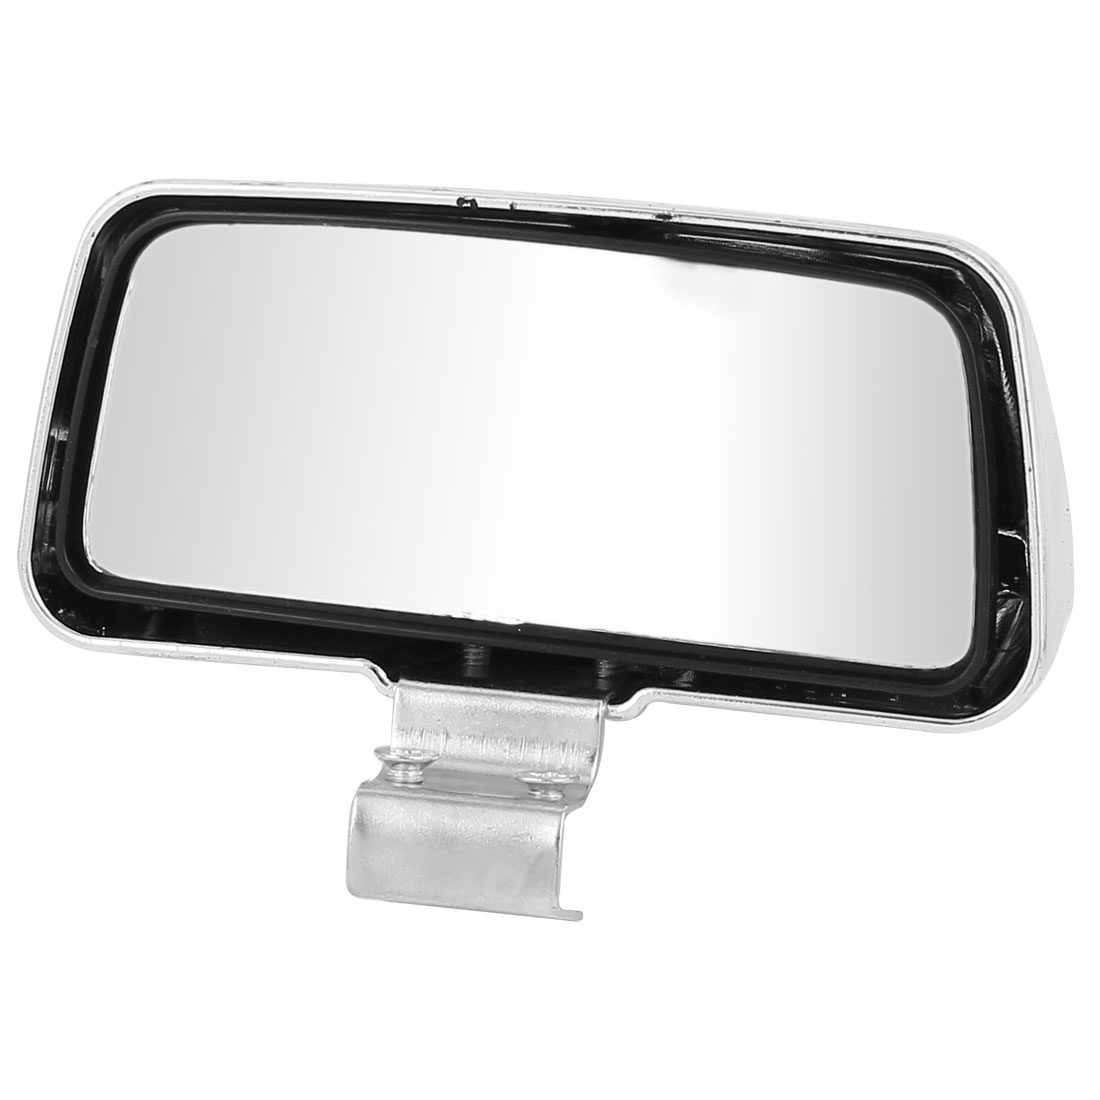 Plasic Frame Auto Car Rectangle Blind Spot Rear View Mirror Silver Tone